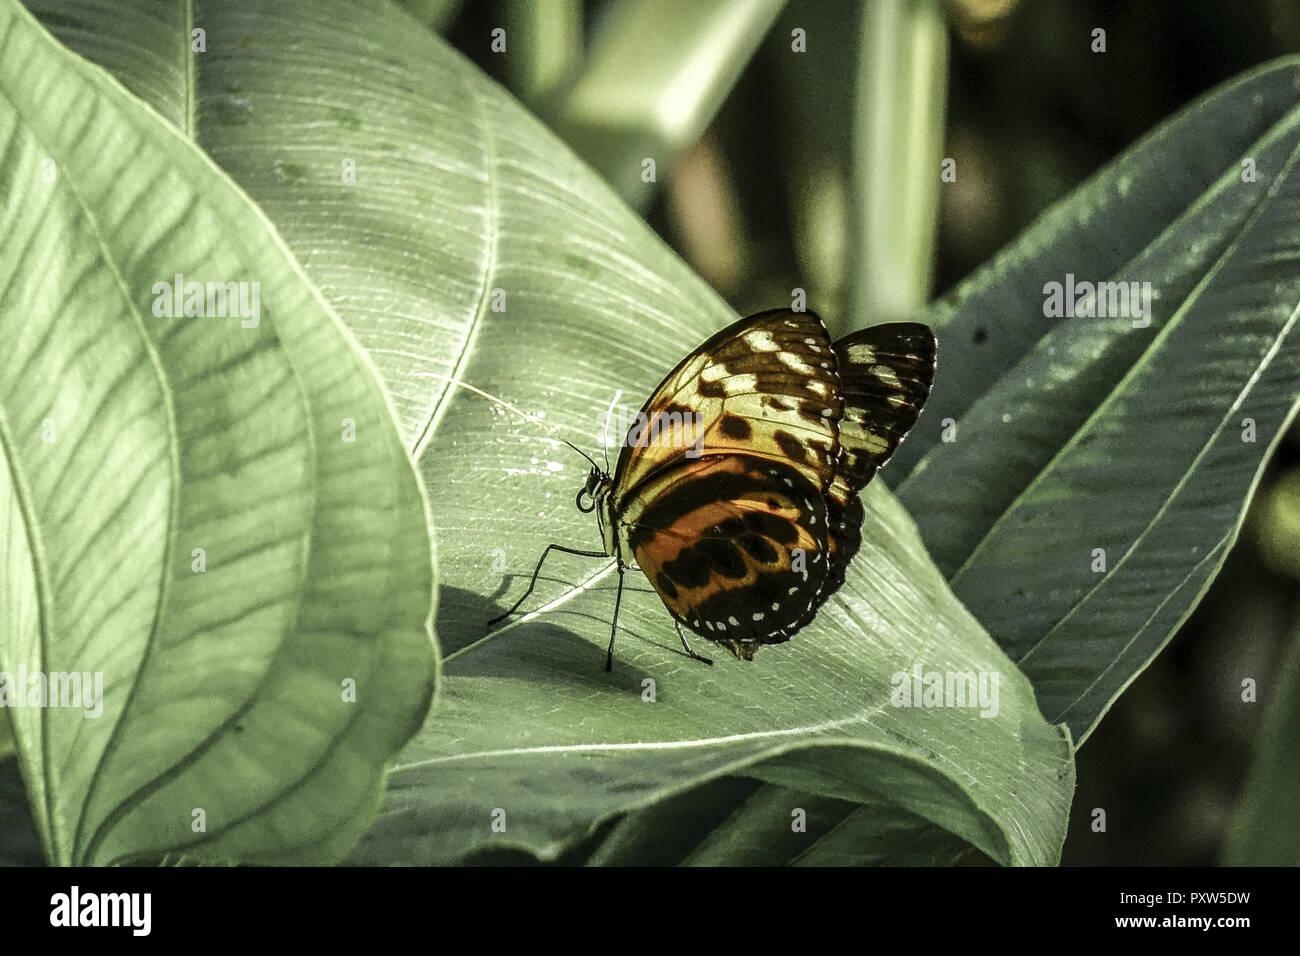 Tropischer Schmetterling, Edelfalter (Heliconius xanthocles), Tropical Butterfly, Nymphalidae (Heliconius xanthocles), Butterfly, Tropical, Butterflie - Stock Image